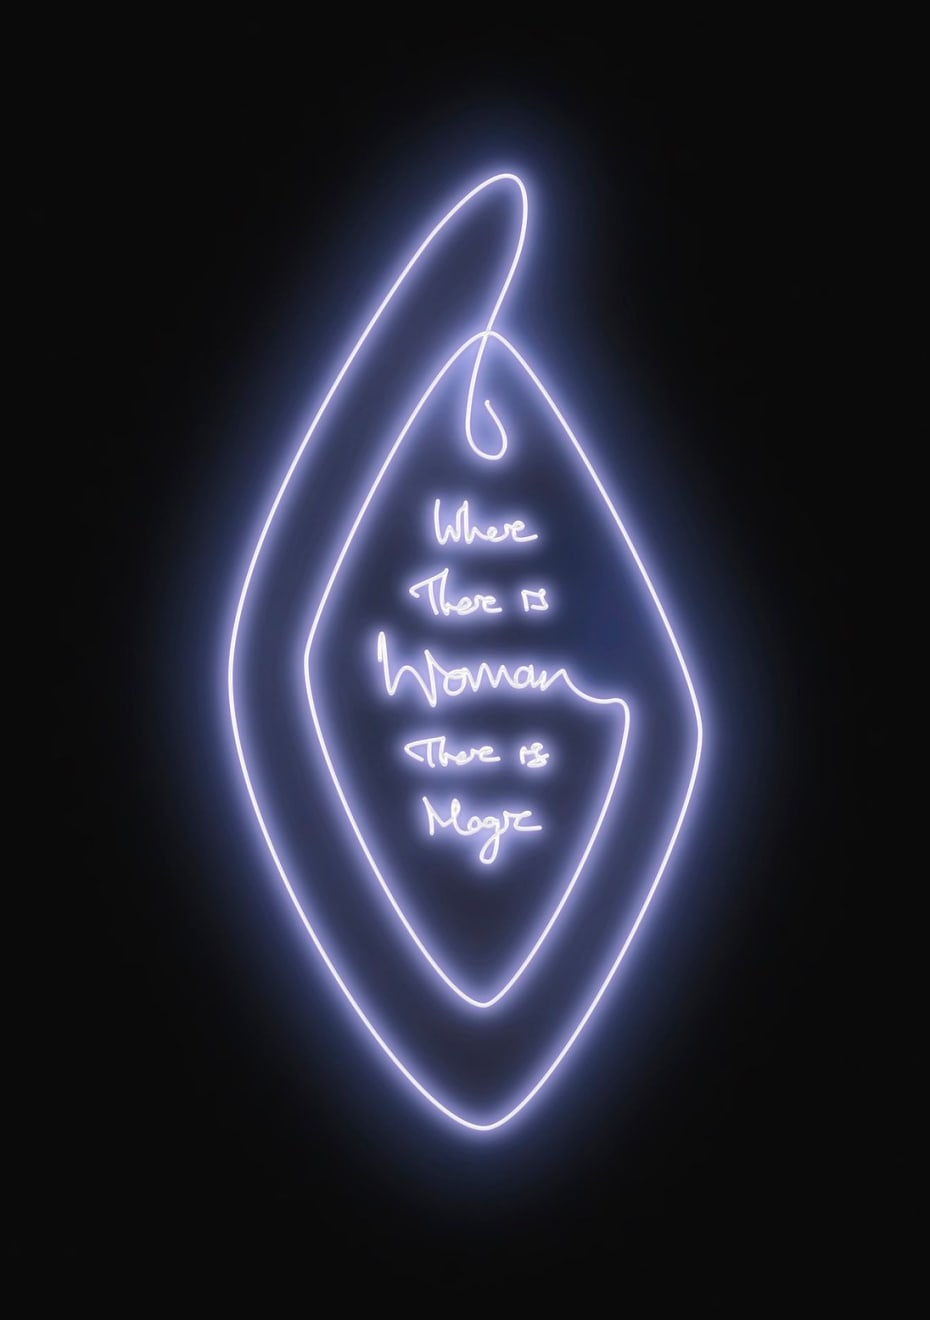 Light Codes - Solo Show at Drang Gallery